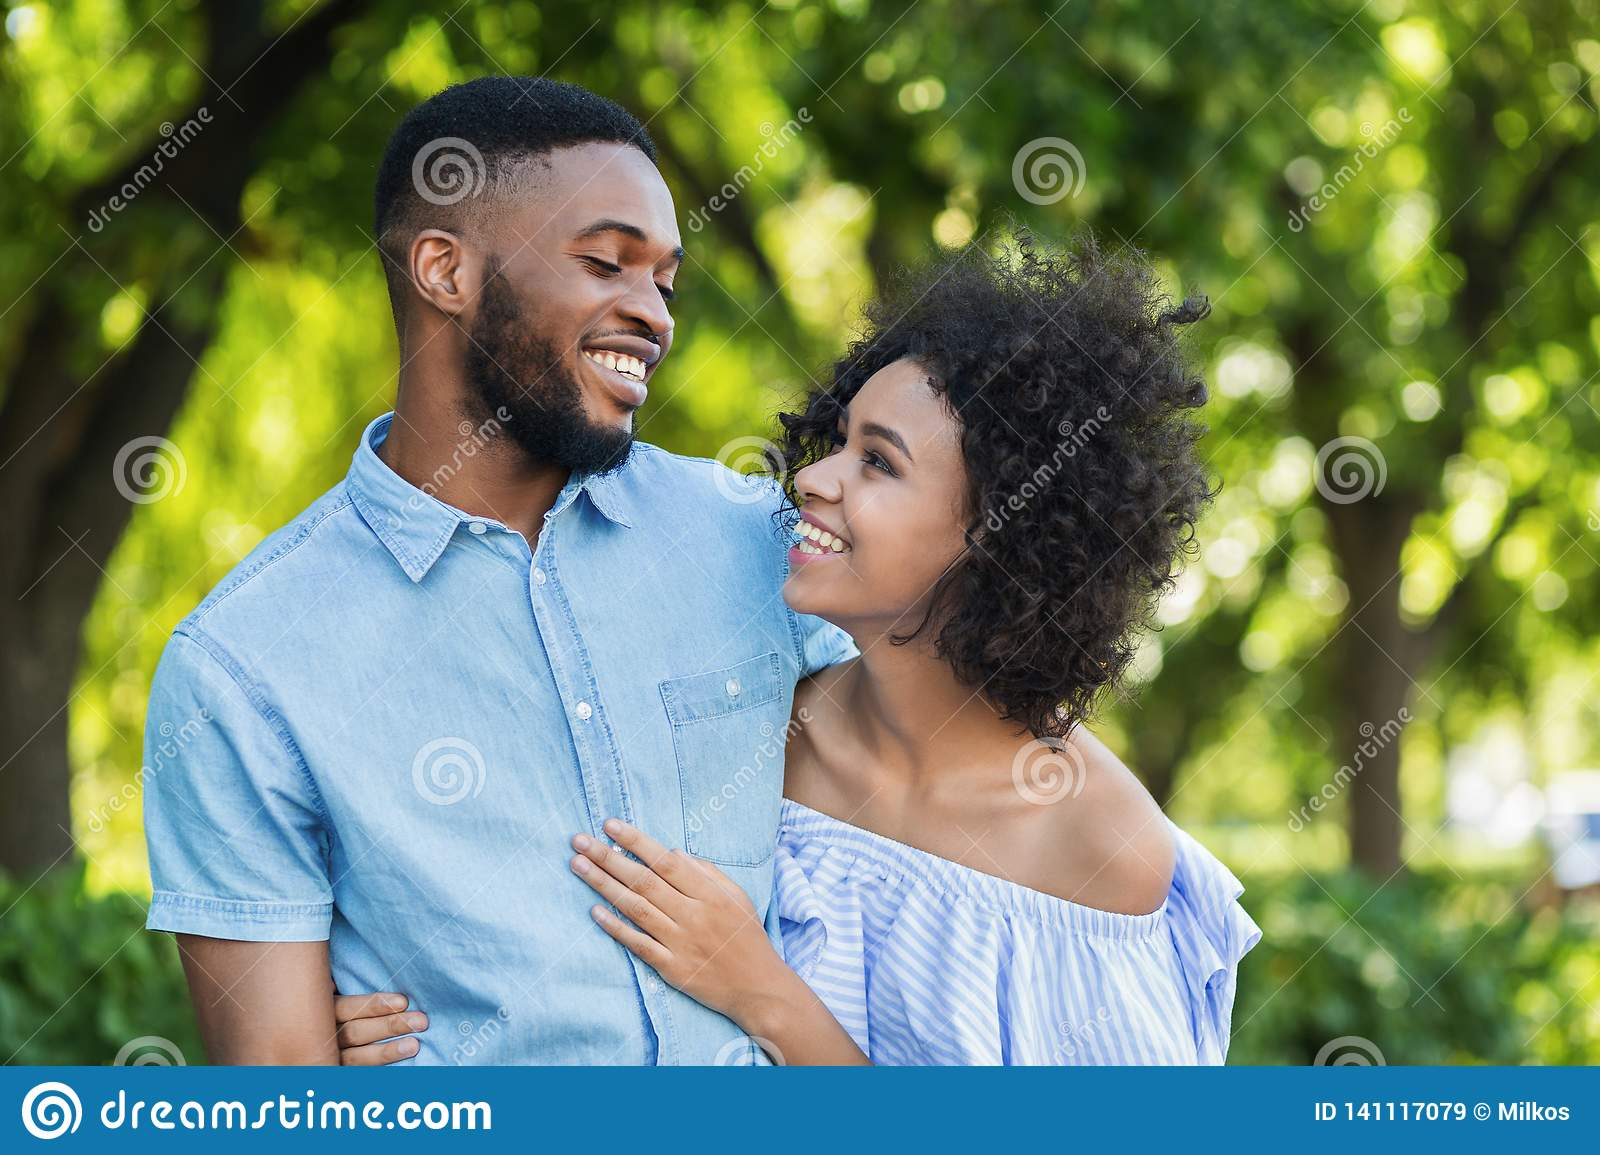 Excited black couple bonding while walking in park